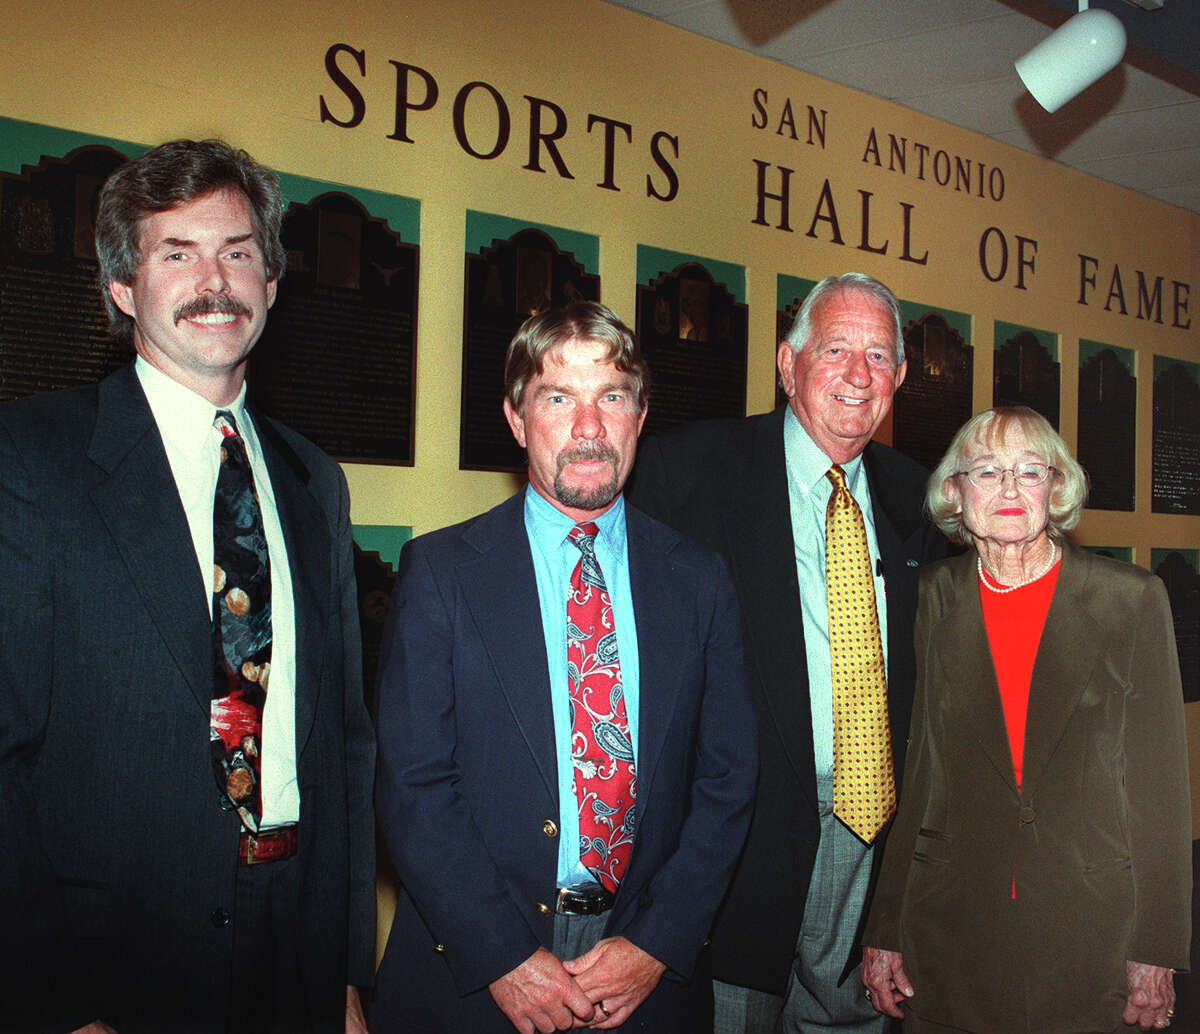 The 2000 class of the San Antonio Sports Hall of Fame included Joe Williams (not shown); Bob Nieman; Bob McKinley, brother of the late Chuck McKinley; Jimmy Littleton; and Margaret Swan Forbes.